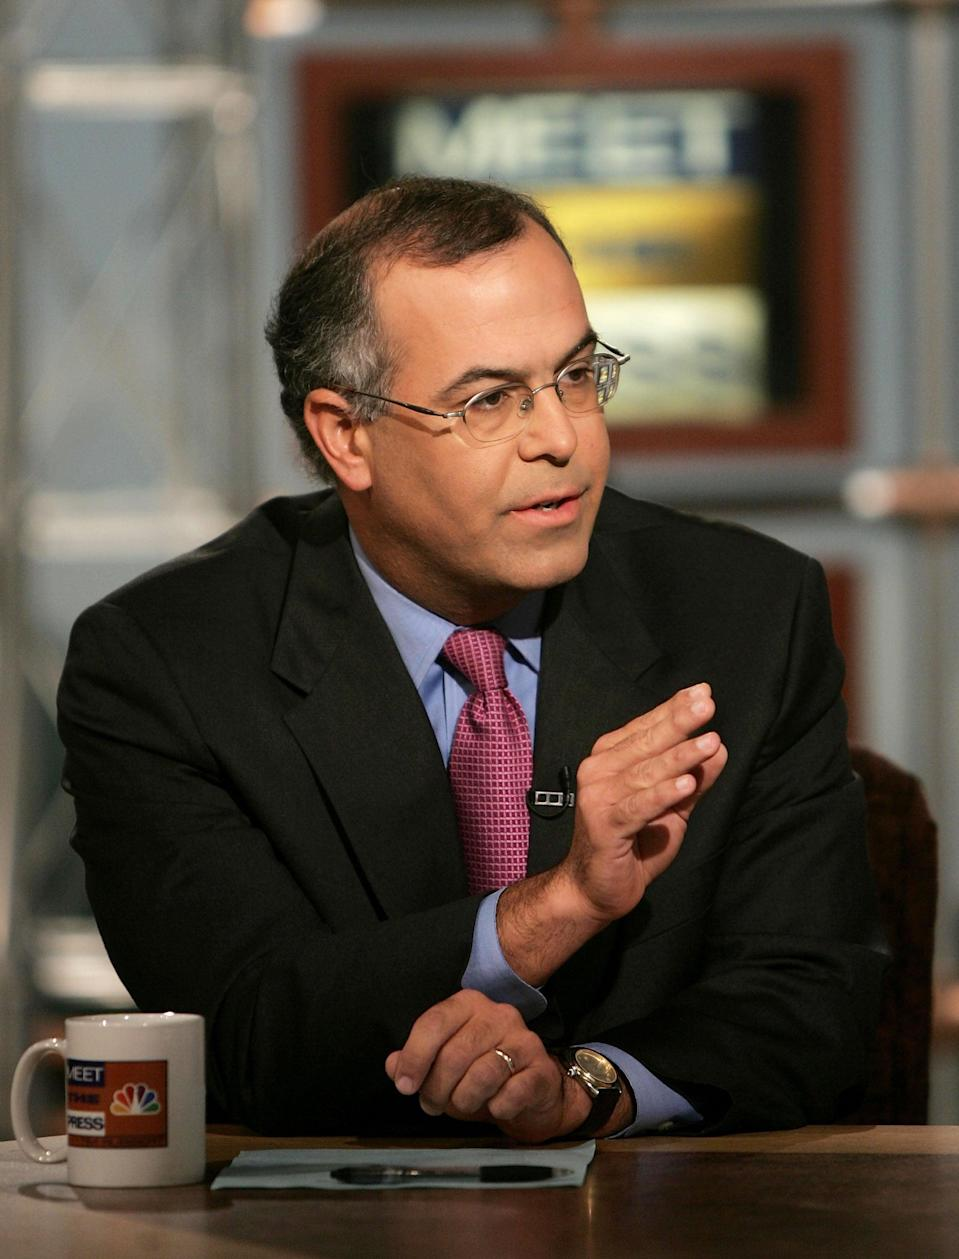 <p>WASHINGTON - SEPTEMBER 25:  New York Times columnist, David Brooks, gestures while speaking on NBC's